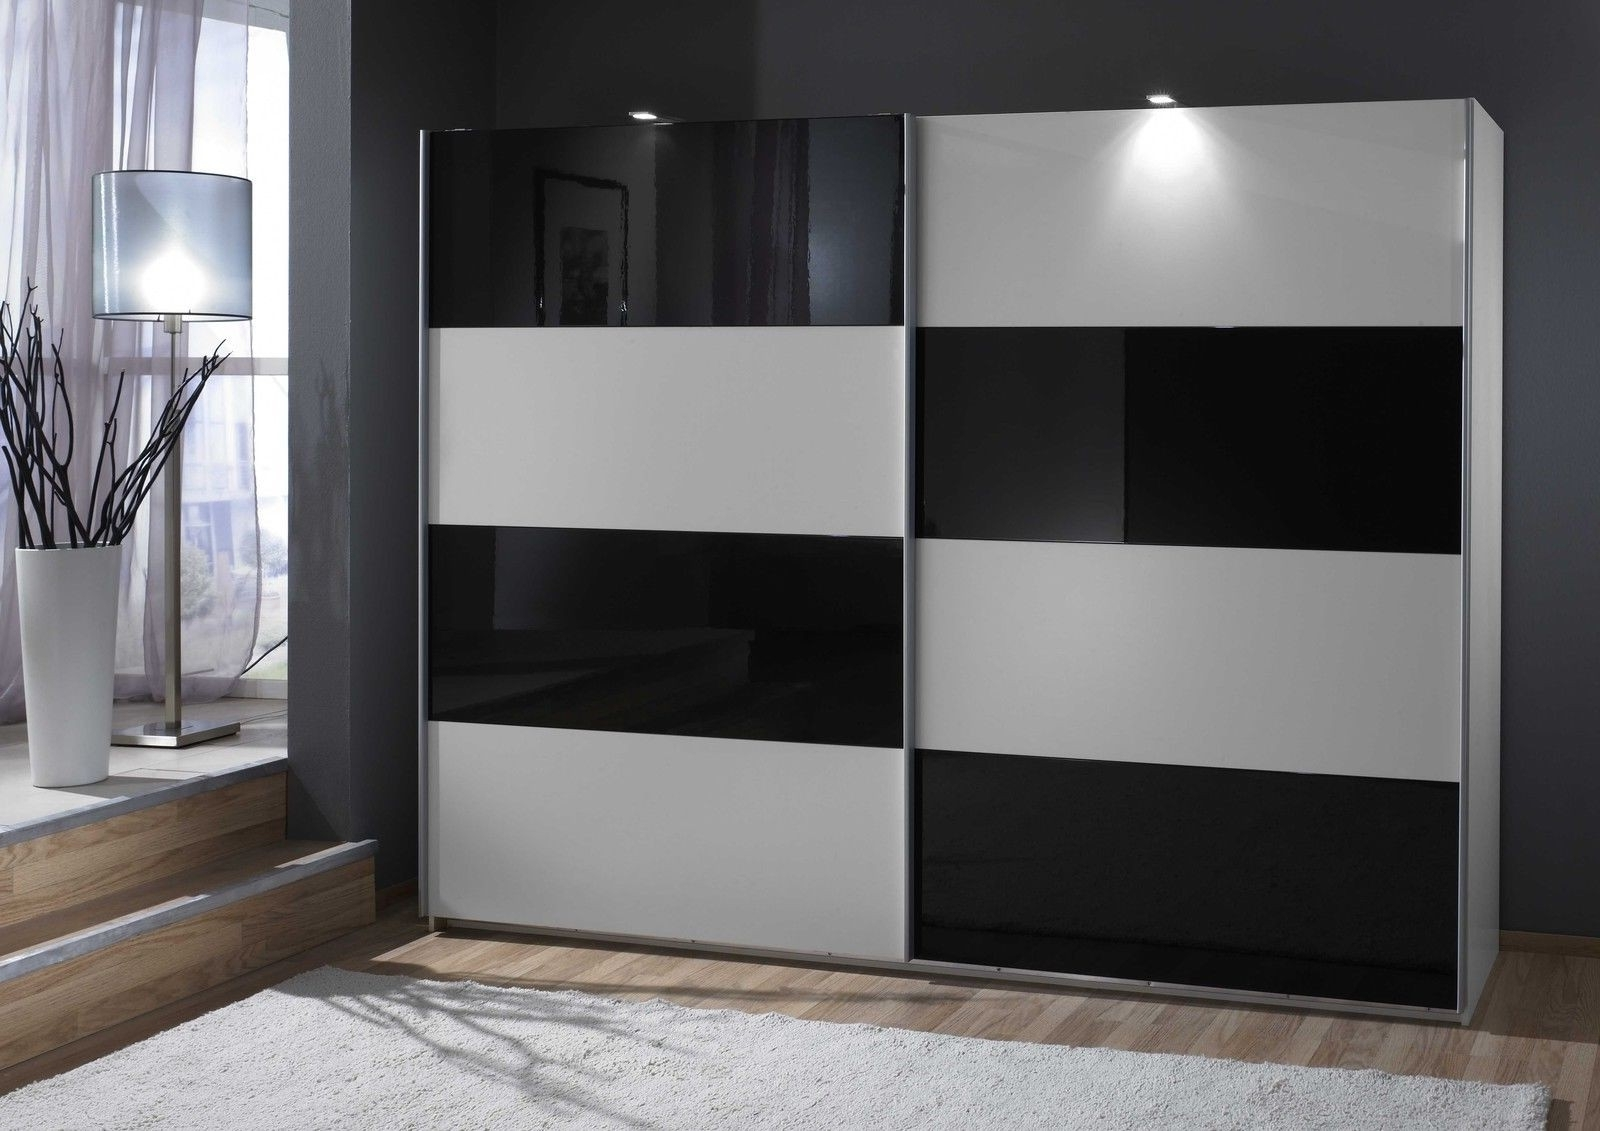 Slumberhaus 'eleganz' German Made Modern White & Black Glass For Well Liked Black Sliding Wardrobes (View 7 of 15)